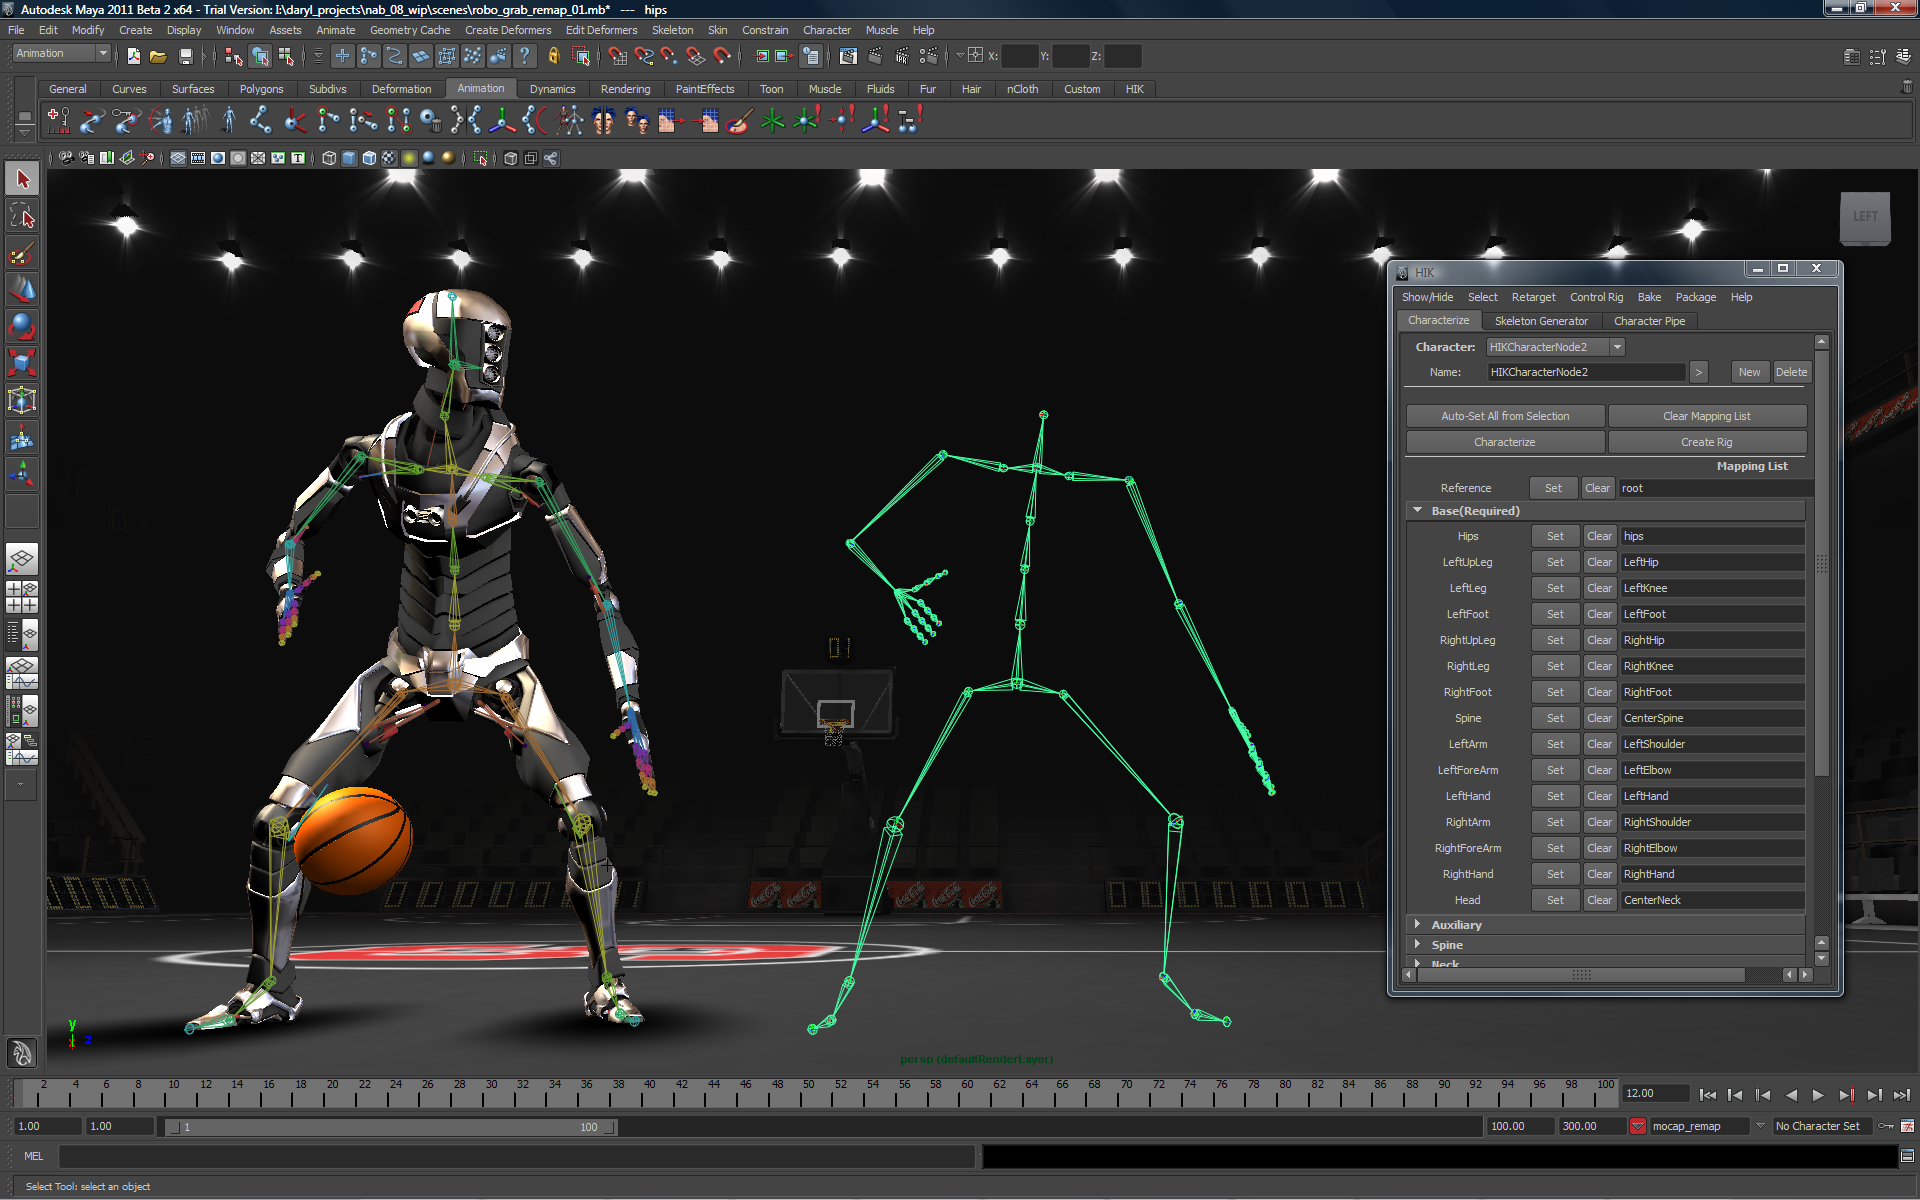 Autodesk Gives Away 25m In Free 3d Modeling Software To: free 3d